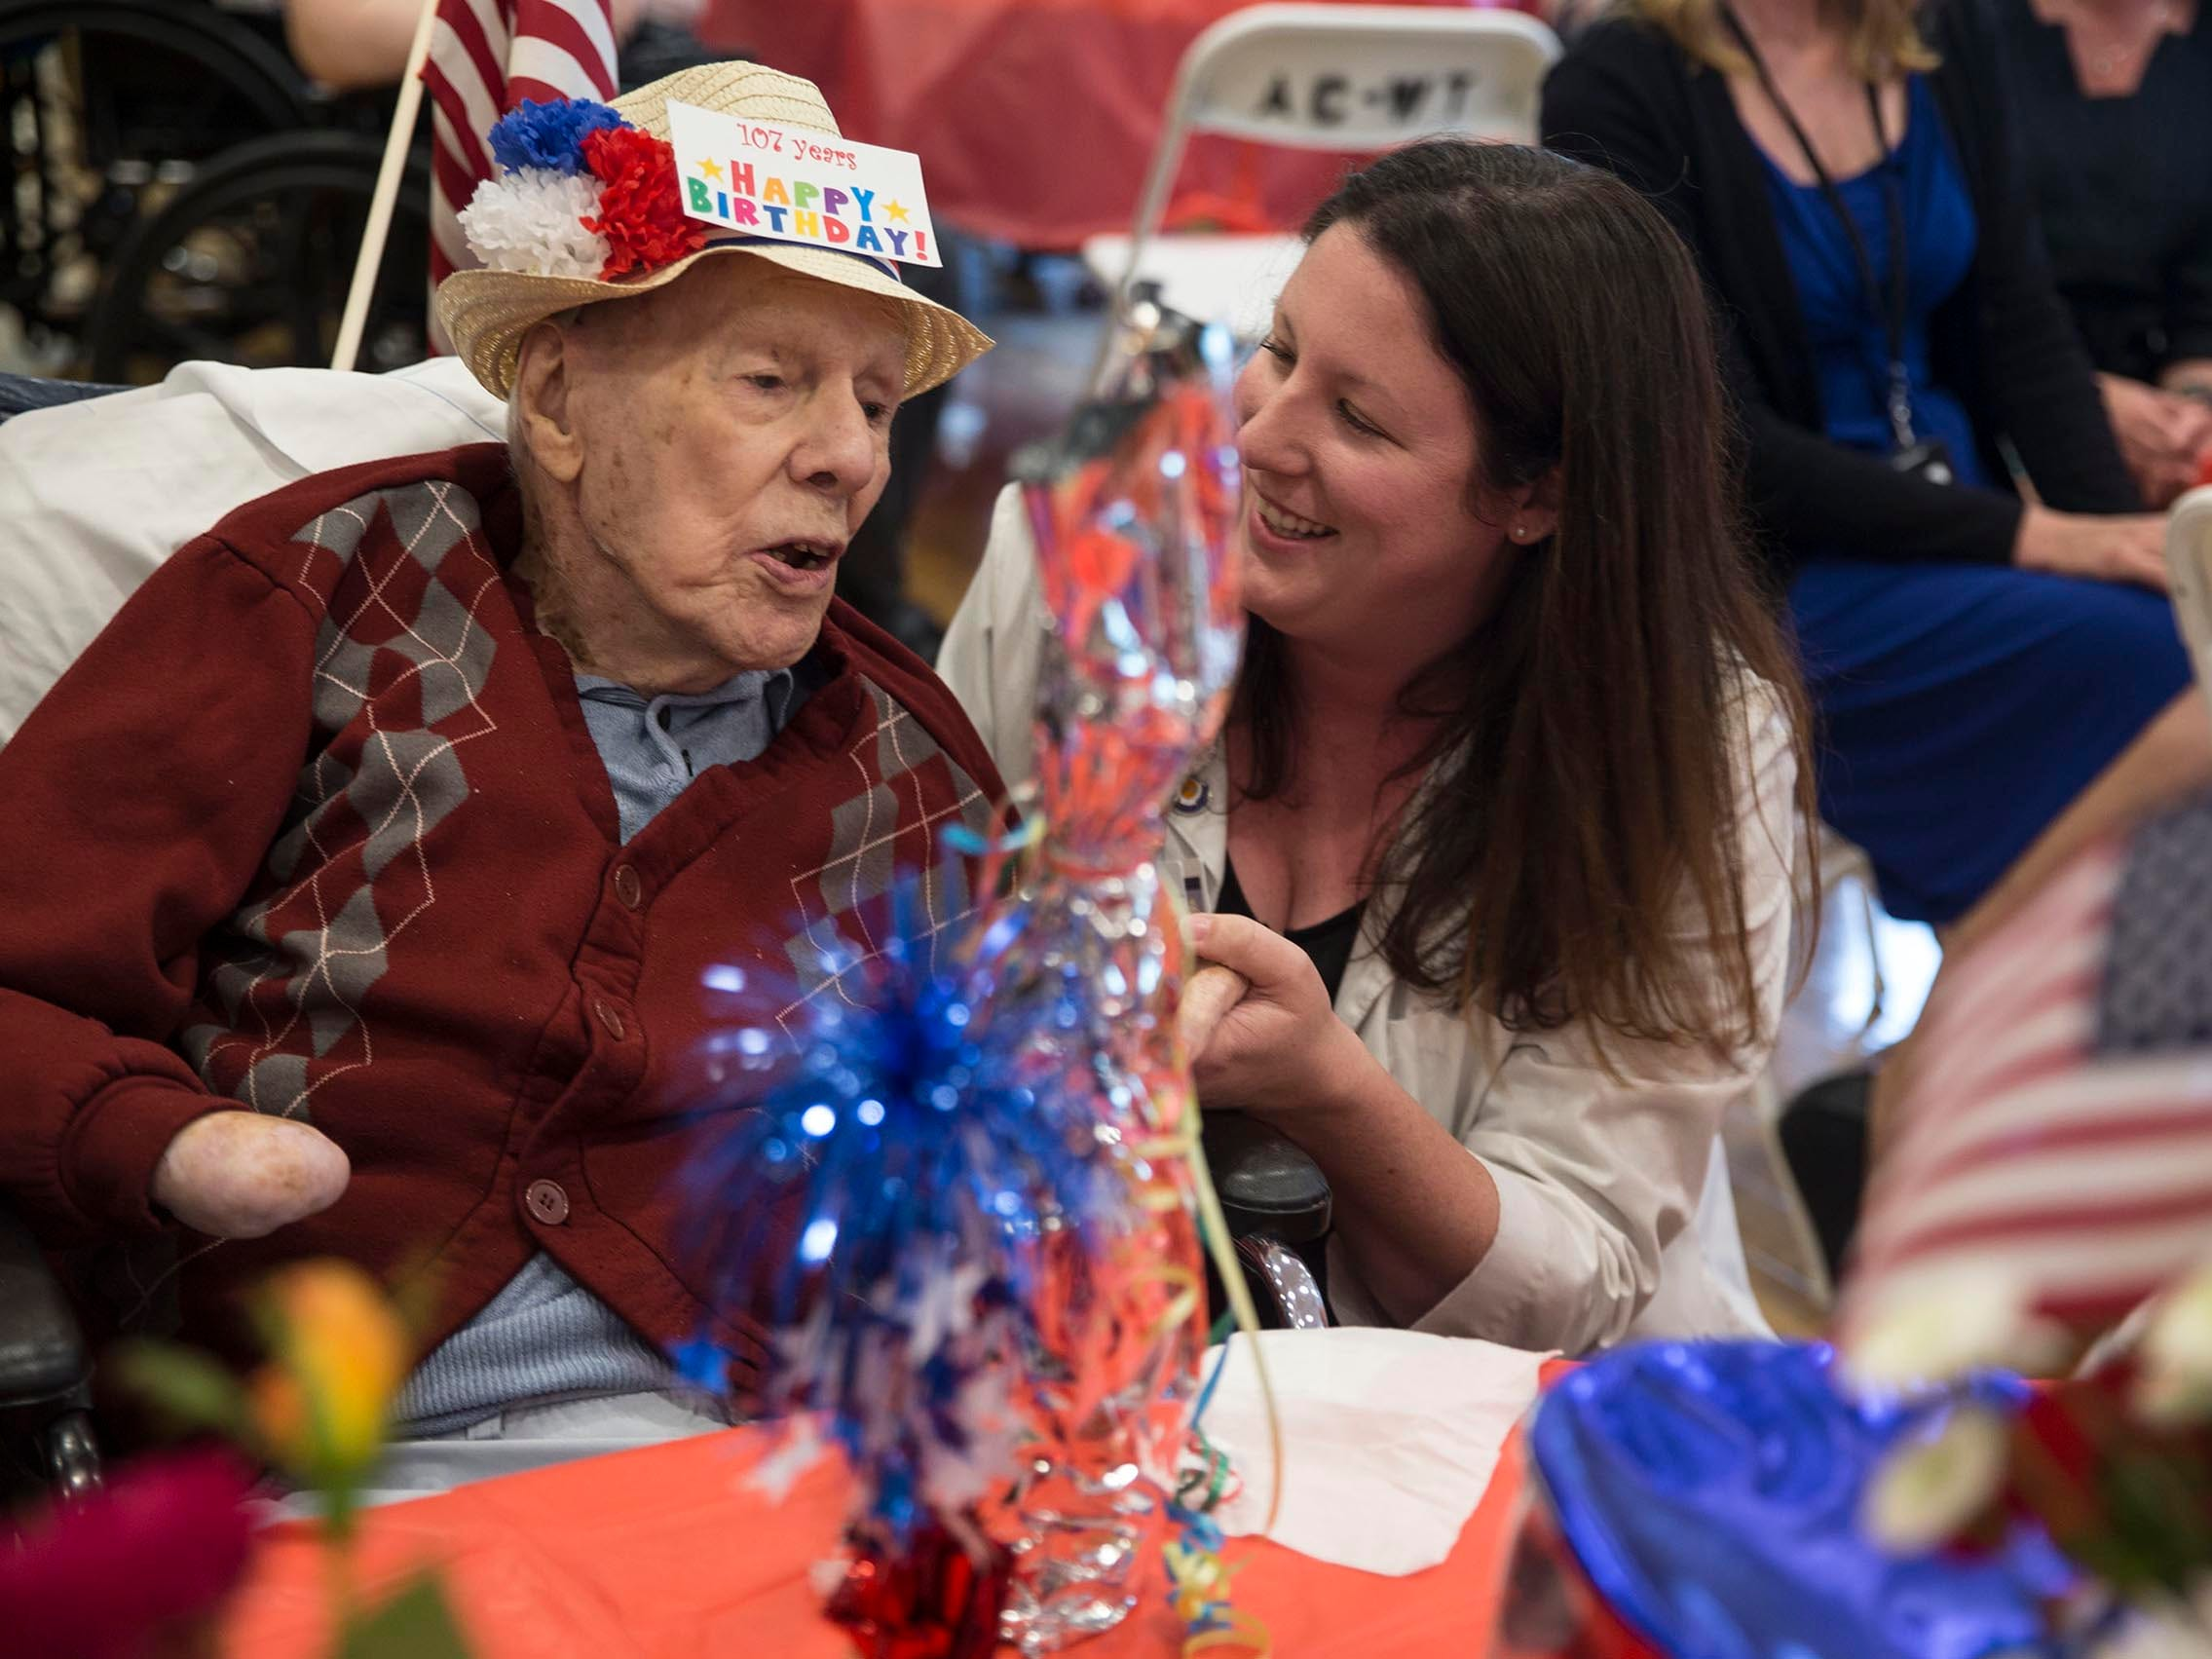 World War II veteran and Flying Tiger Bill Laun of Manchester, is honored with a party for turning 107 years old. Michelle Engroff of VNA Group presents Laun with a bottle of German wine for his birthday in Manchester, NJ on June 8, 2018